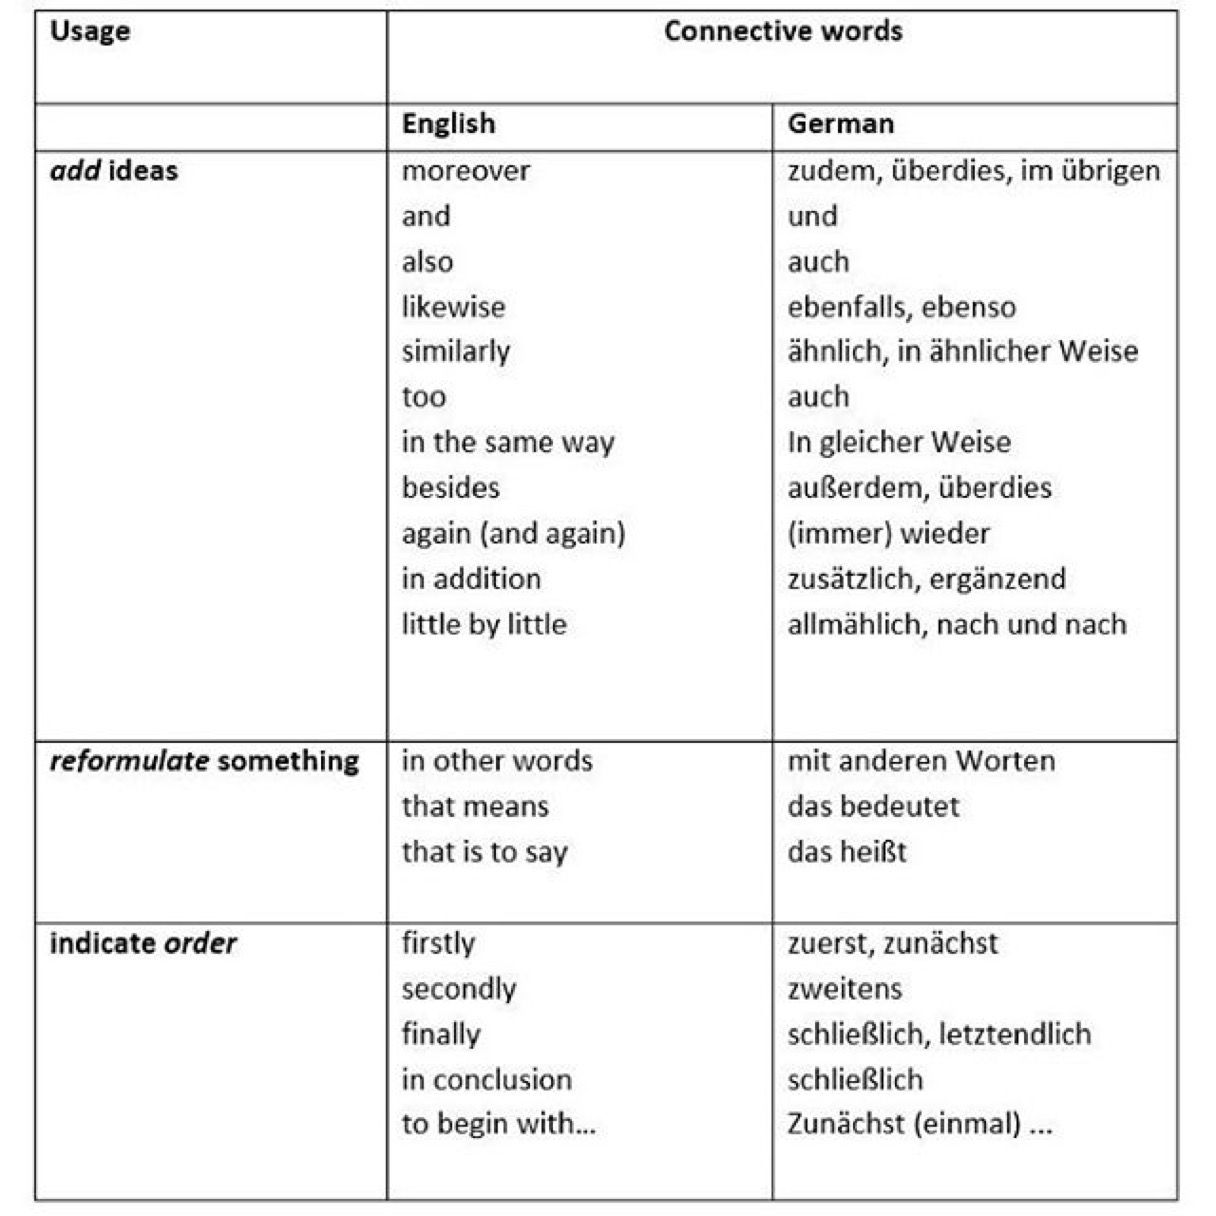 Connective Words